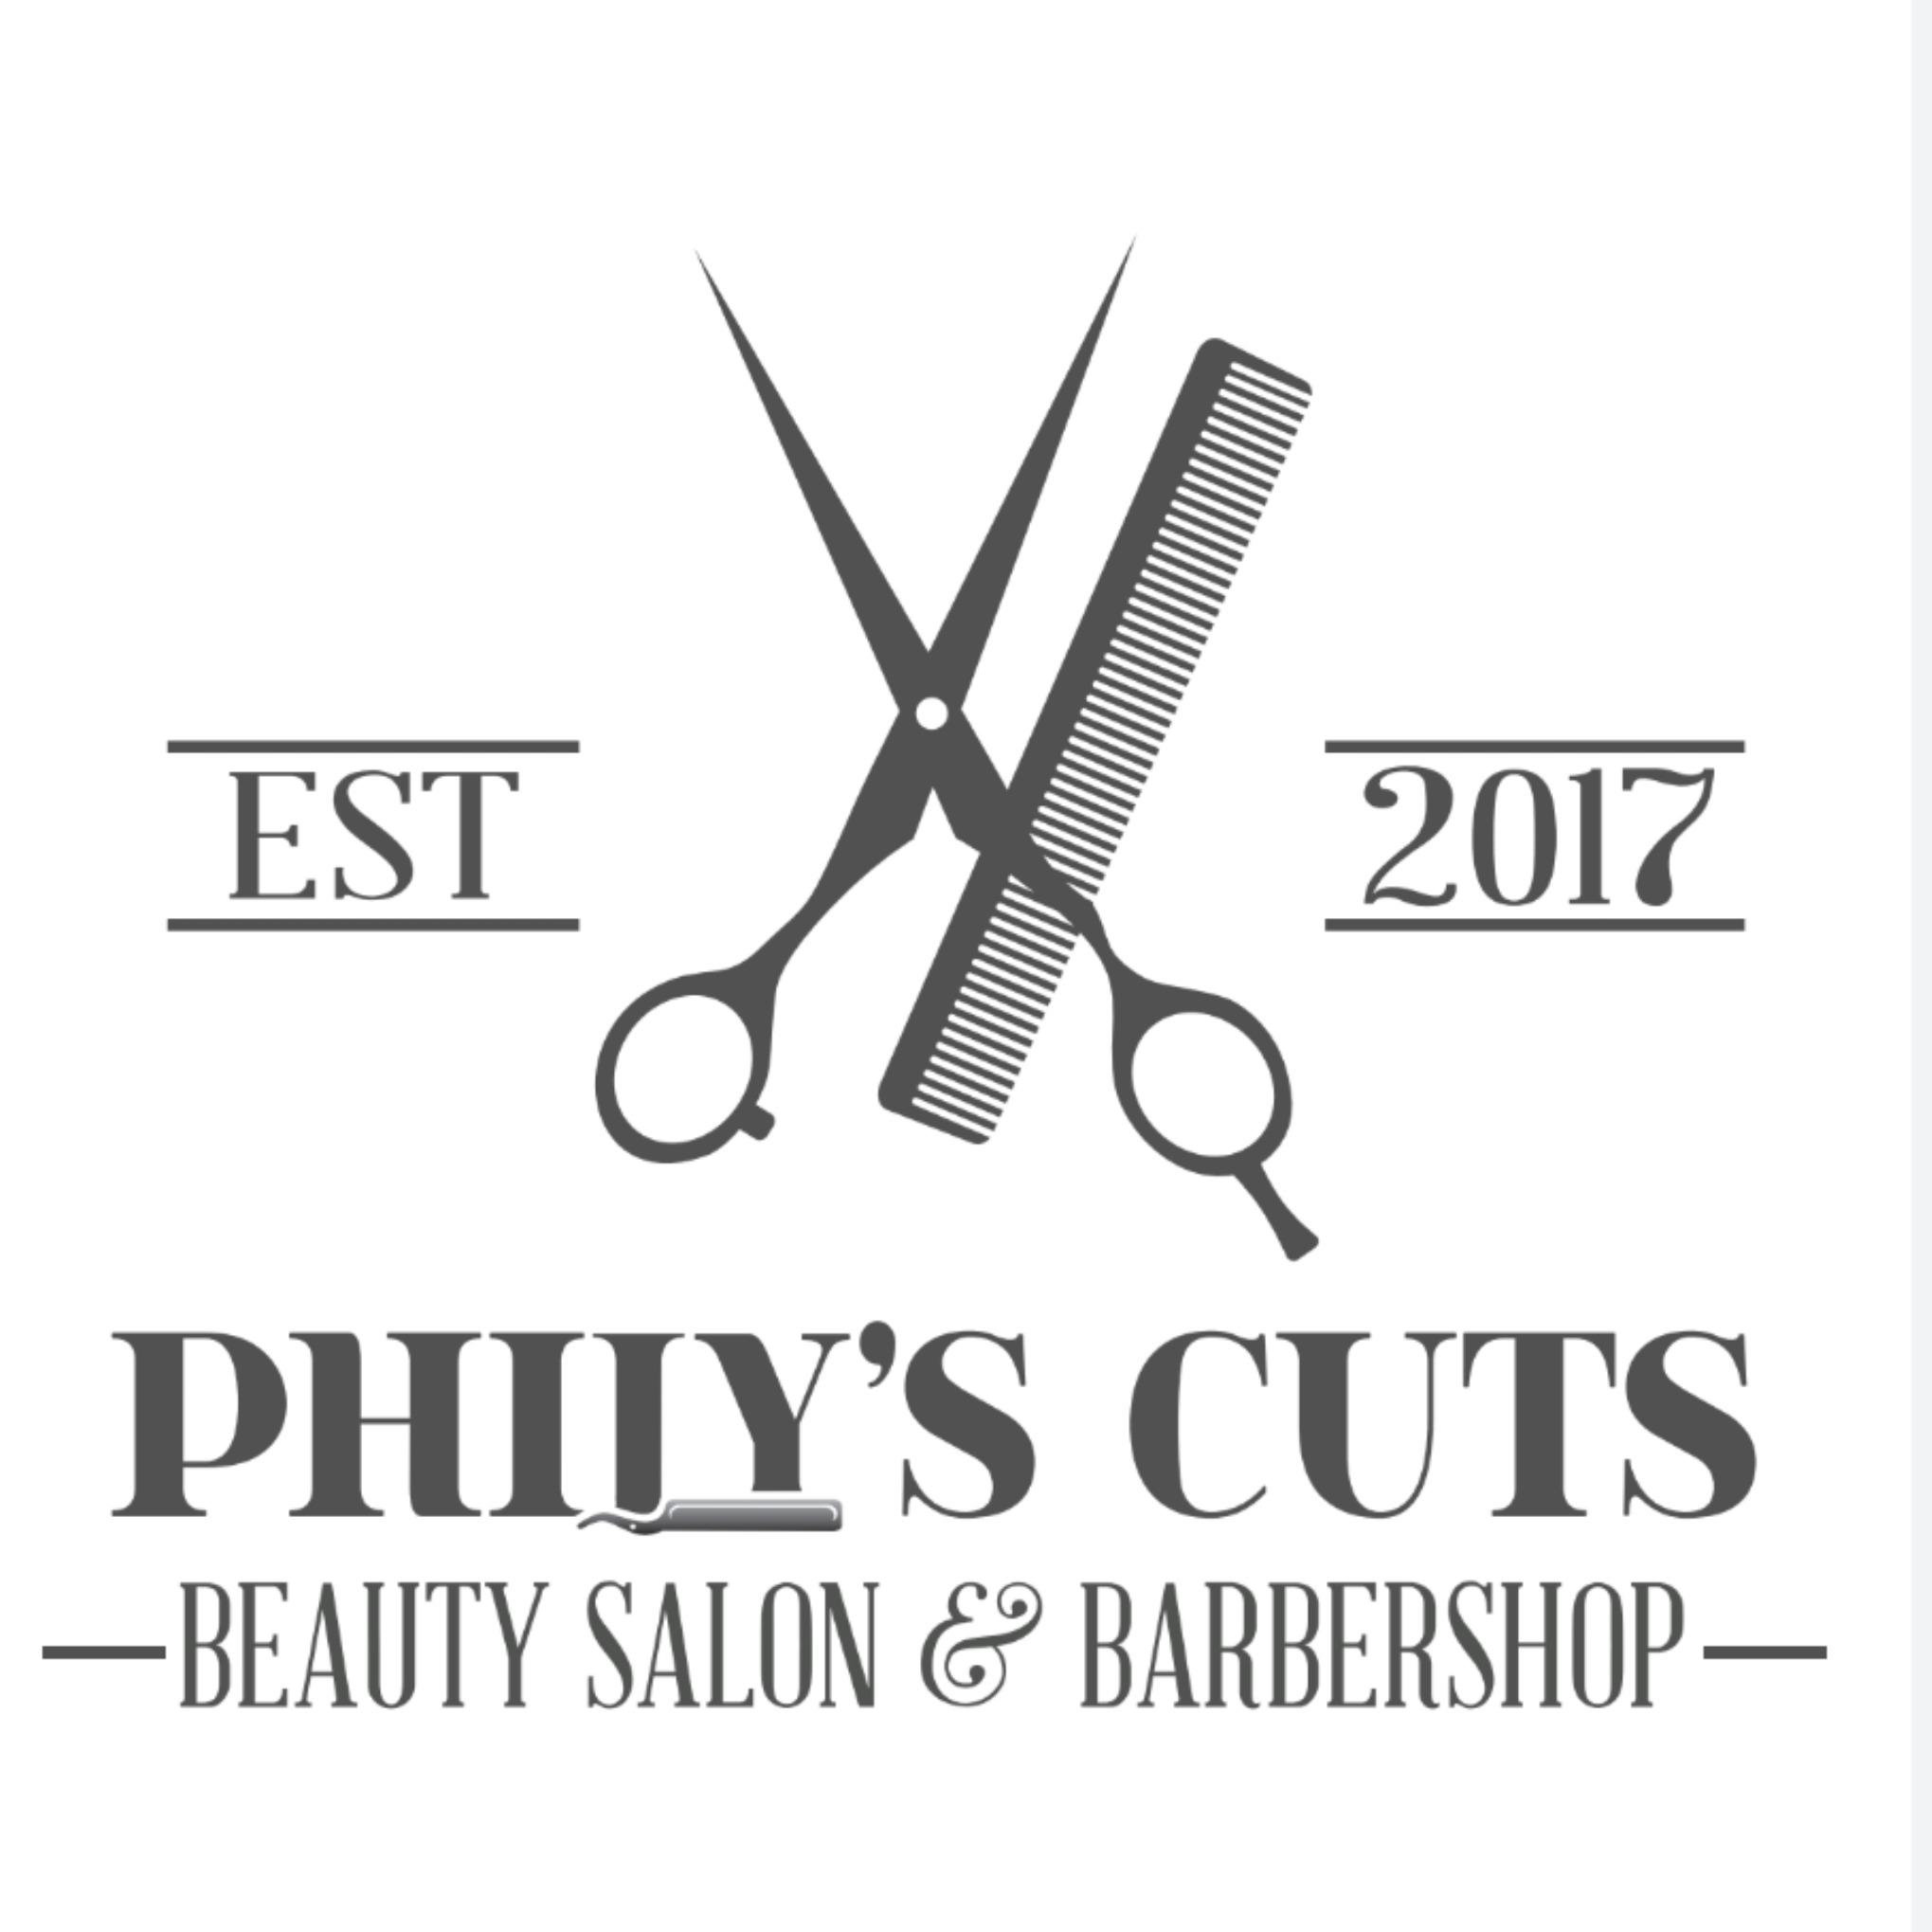 Phily's Cuts Beauty Salon & Barber Shop